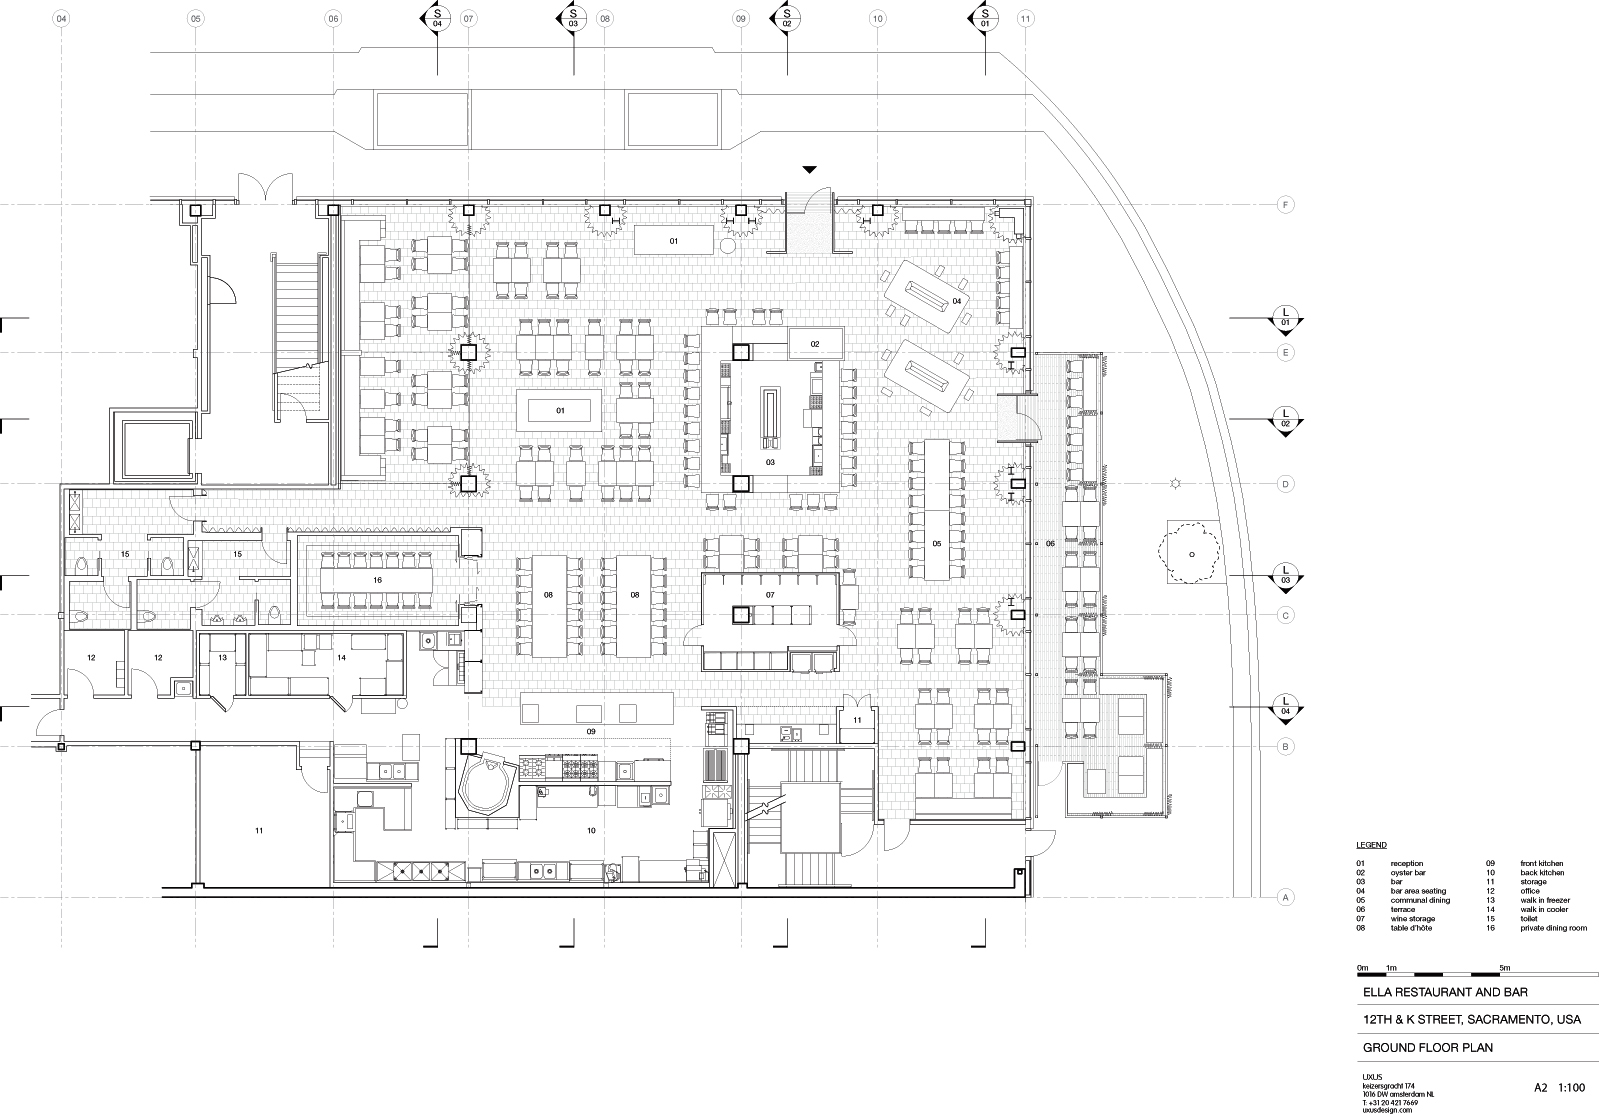 Pin by maiko nelson on ides 334 cosmopolitan project Bar floor plans designs for free